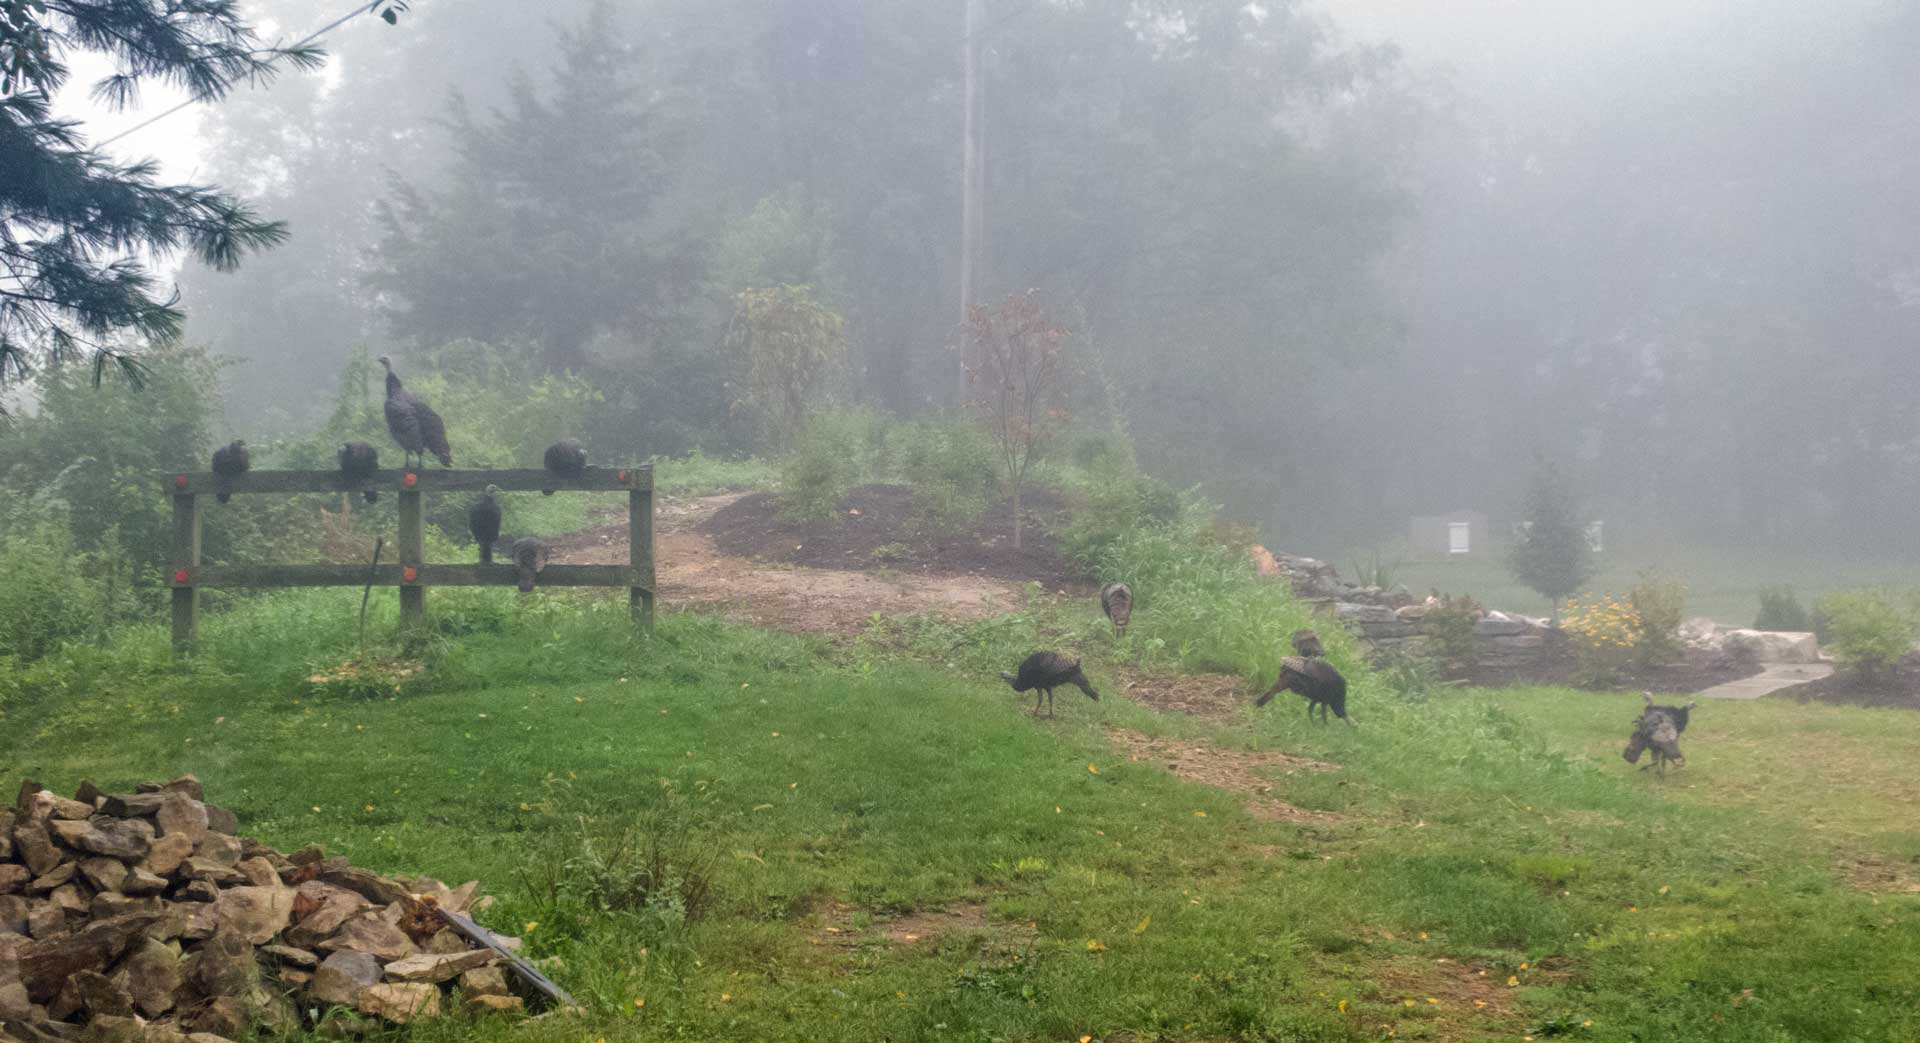 Turkeys at the Pond